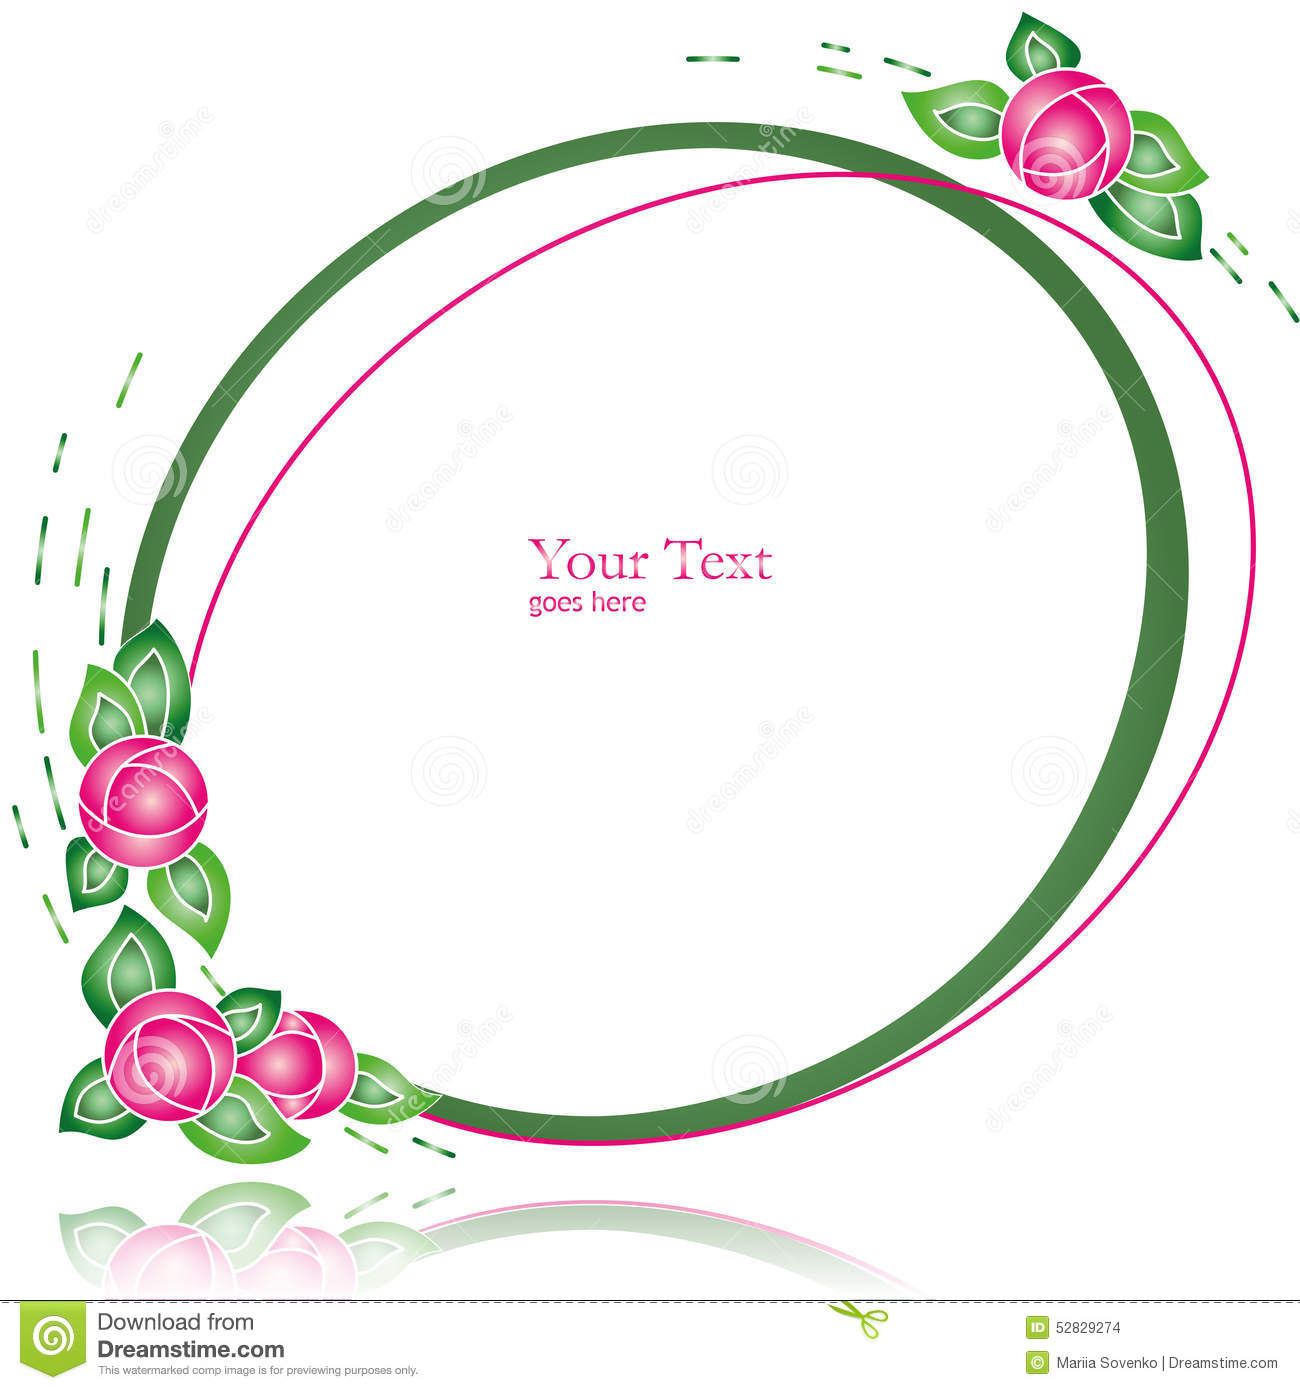 Oval Simple Frame With Abstract Flowers